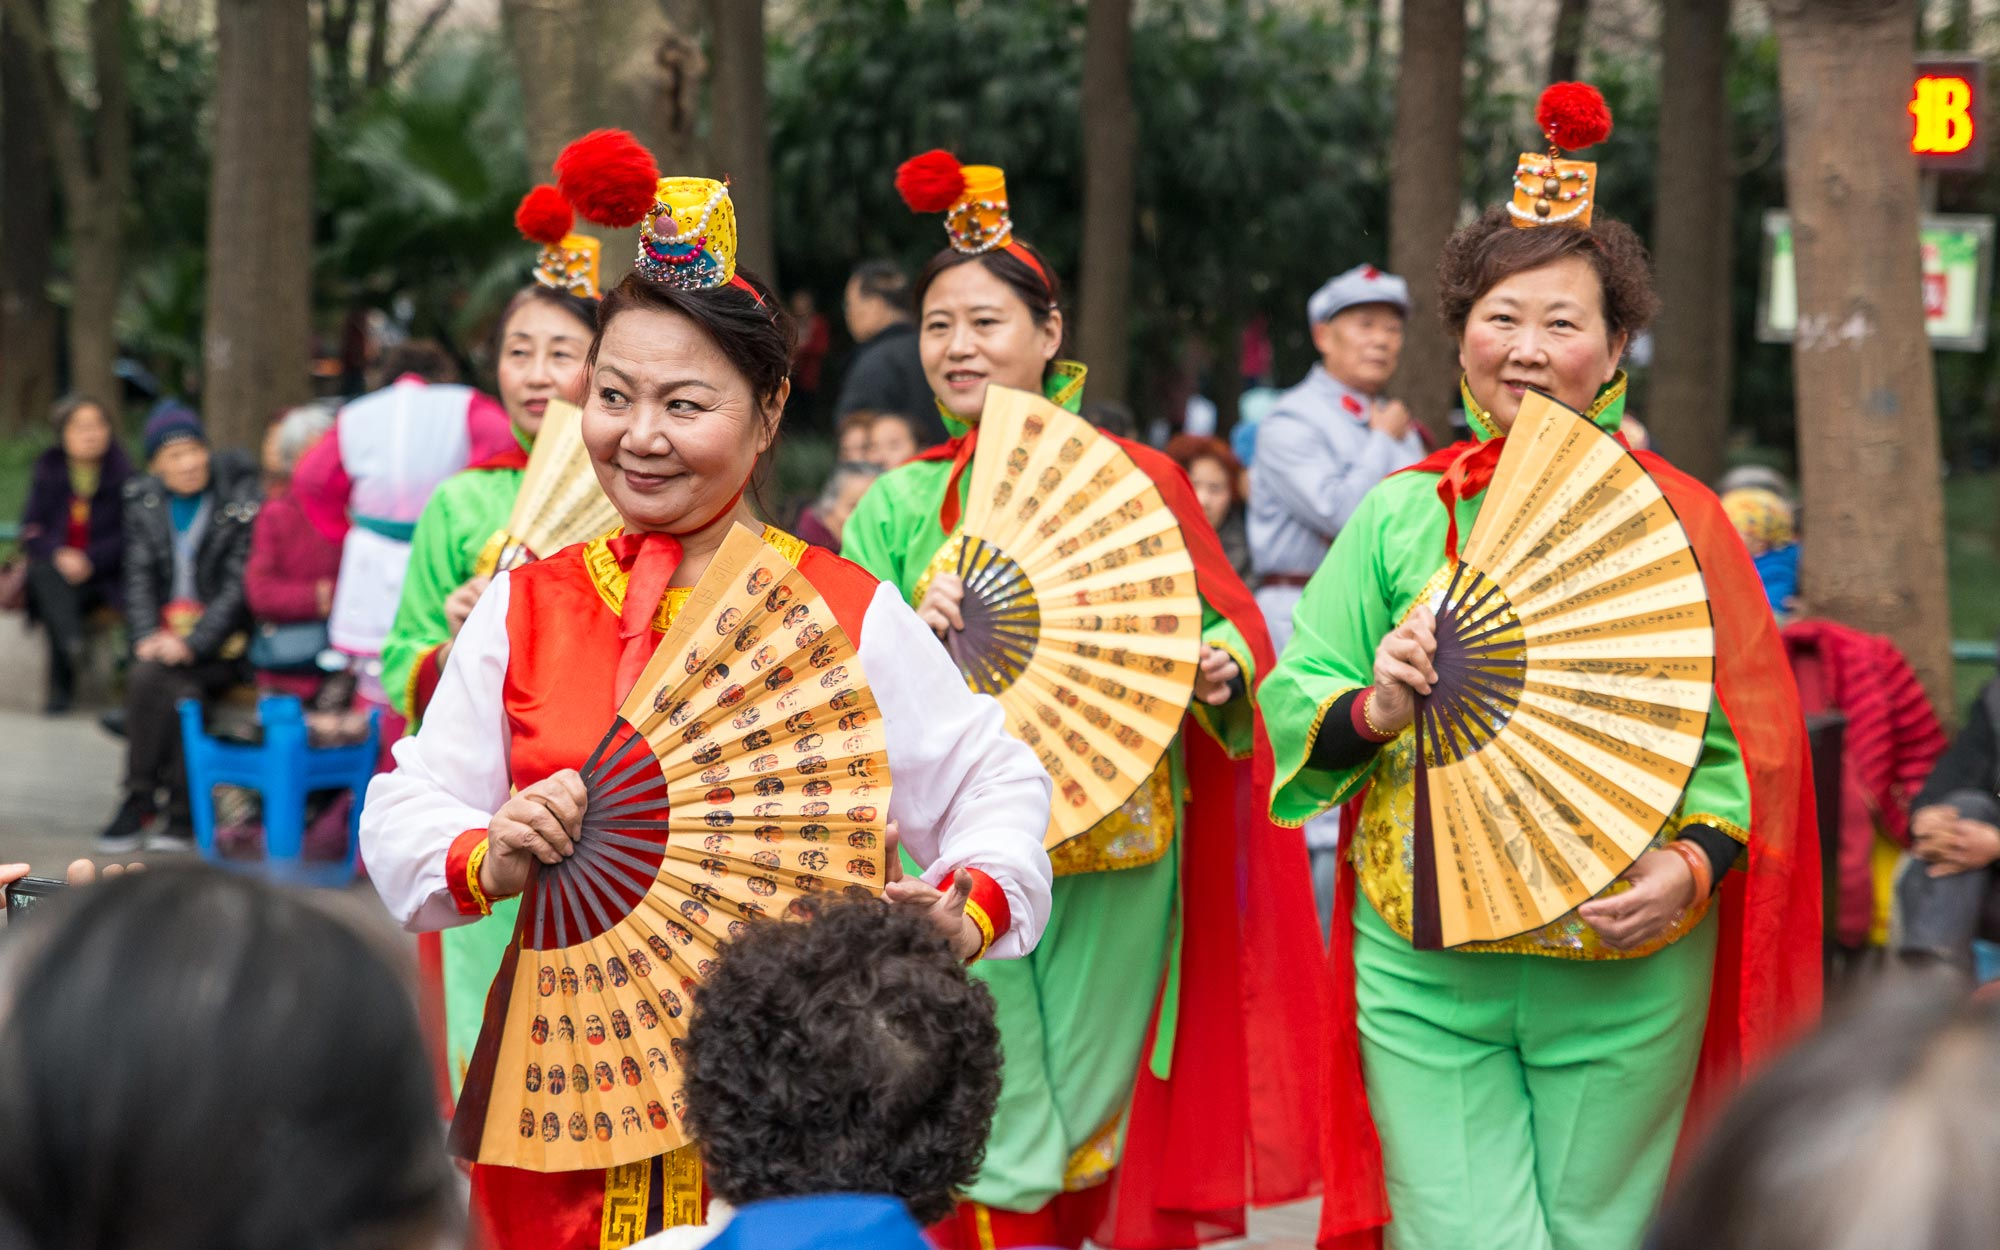 Women's Day Celebration, People's Park, Chengdu, China